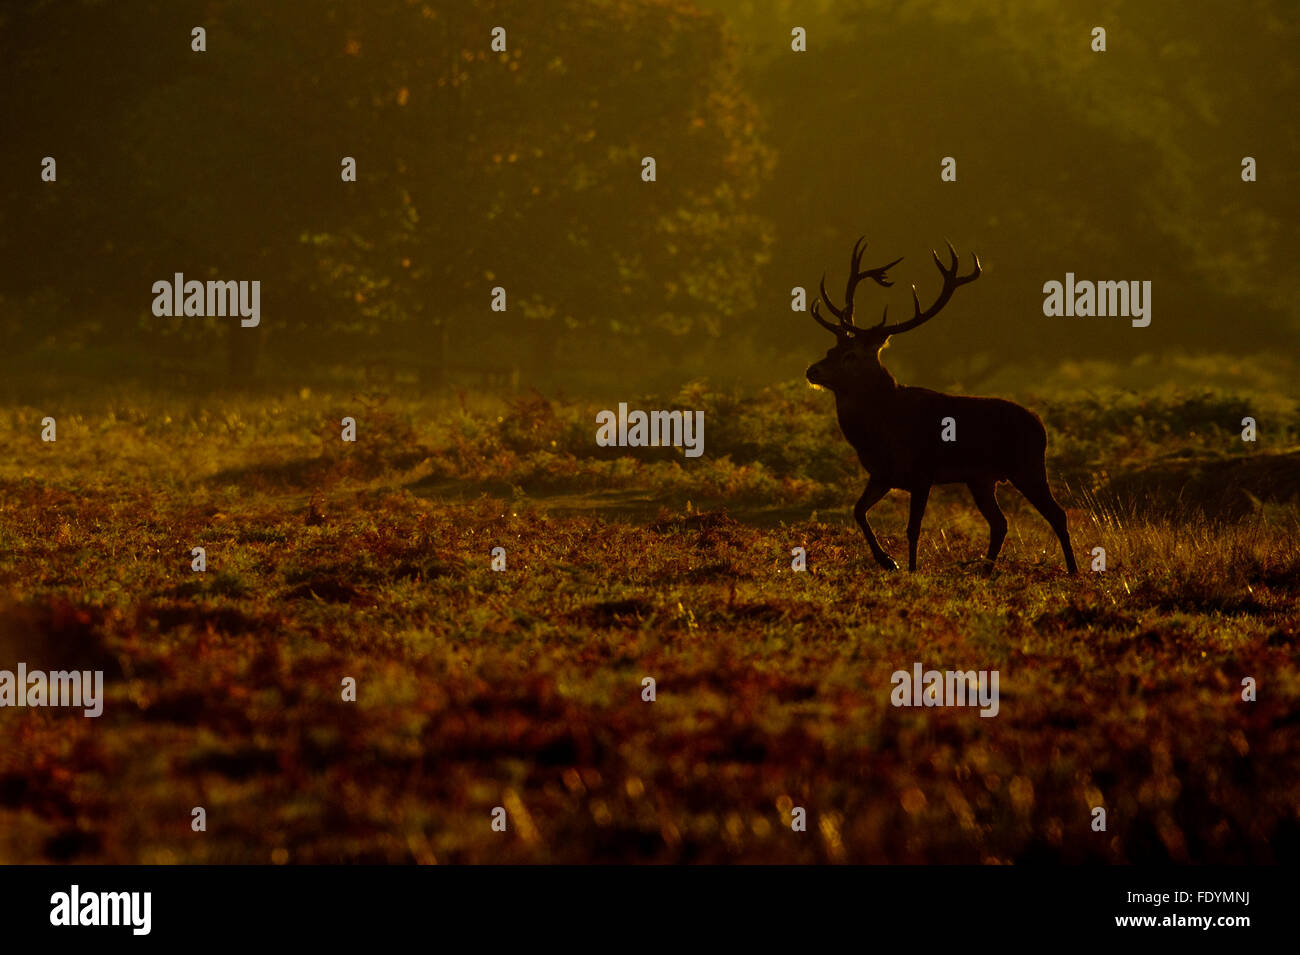 Red Deer (Cervus elaphus) stag in morning light - Stock Image